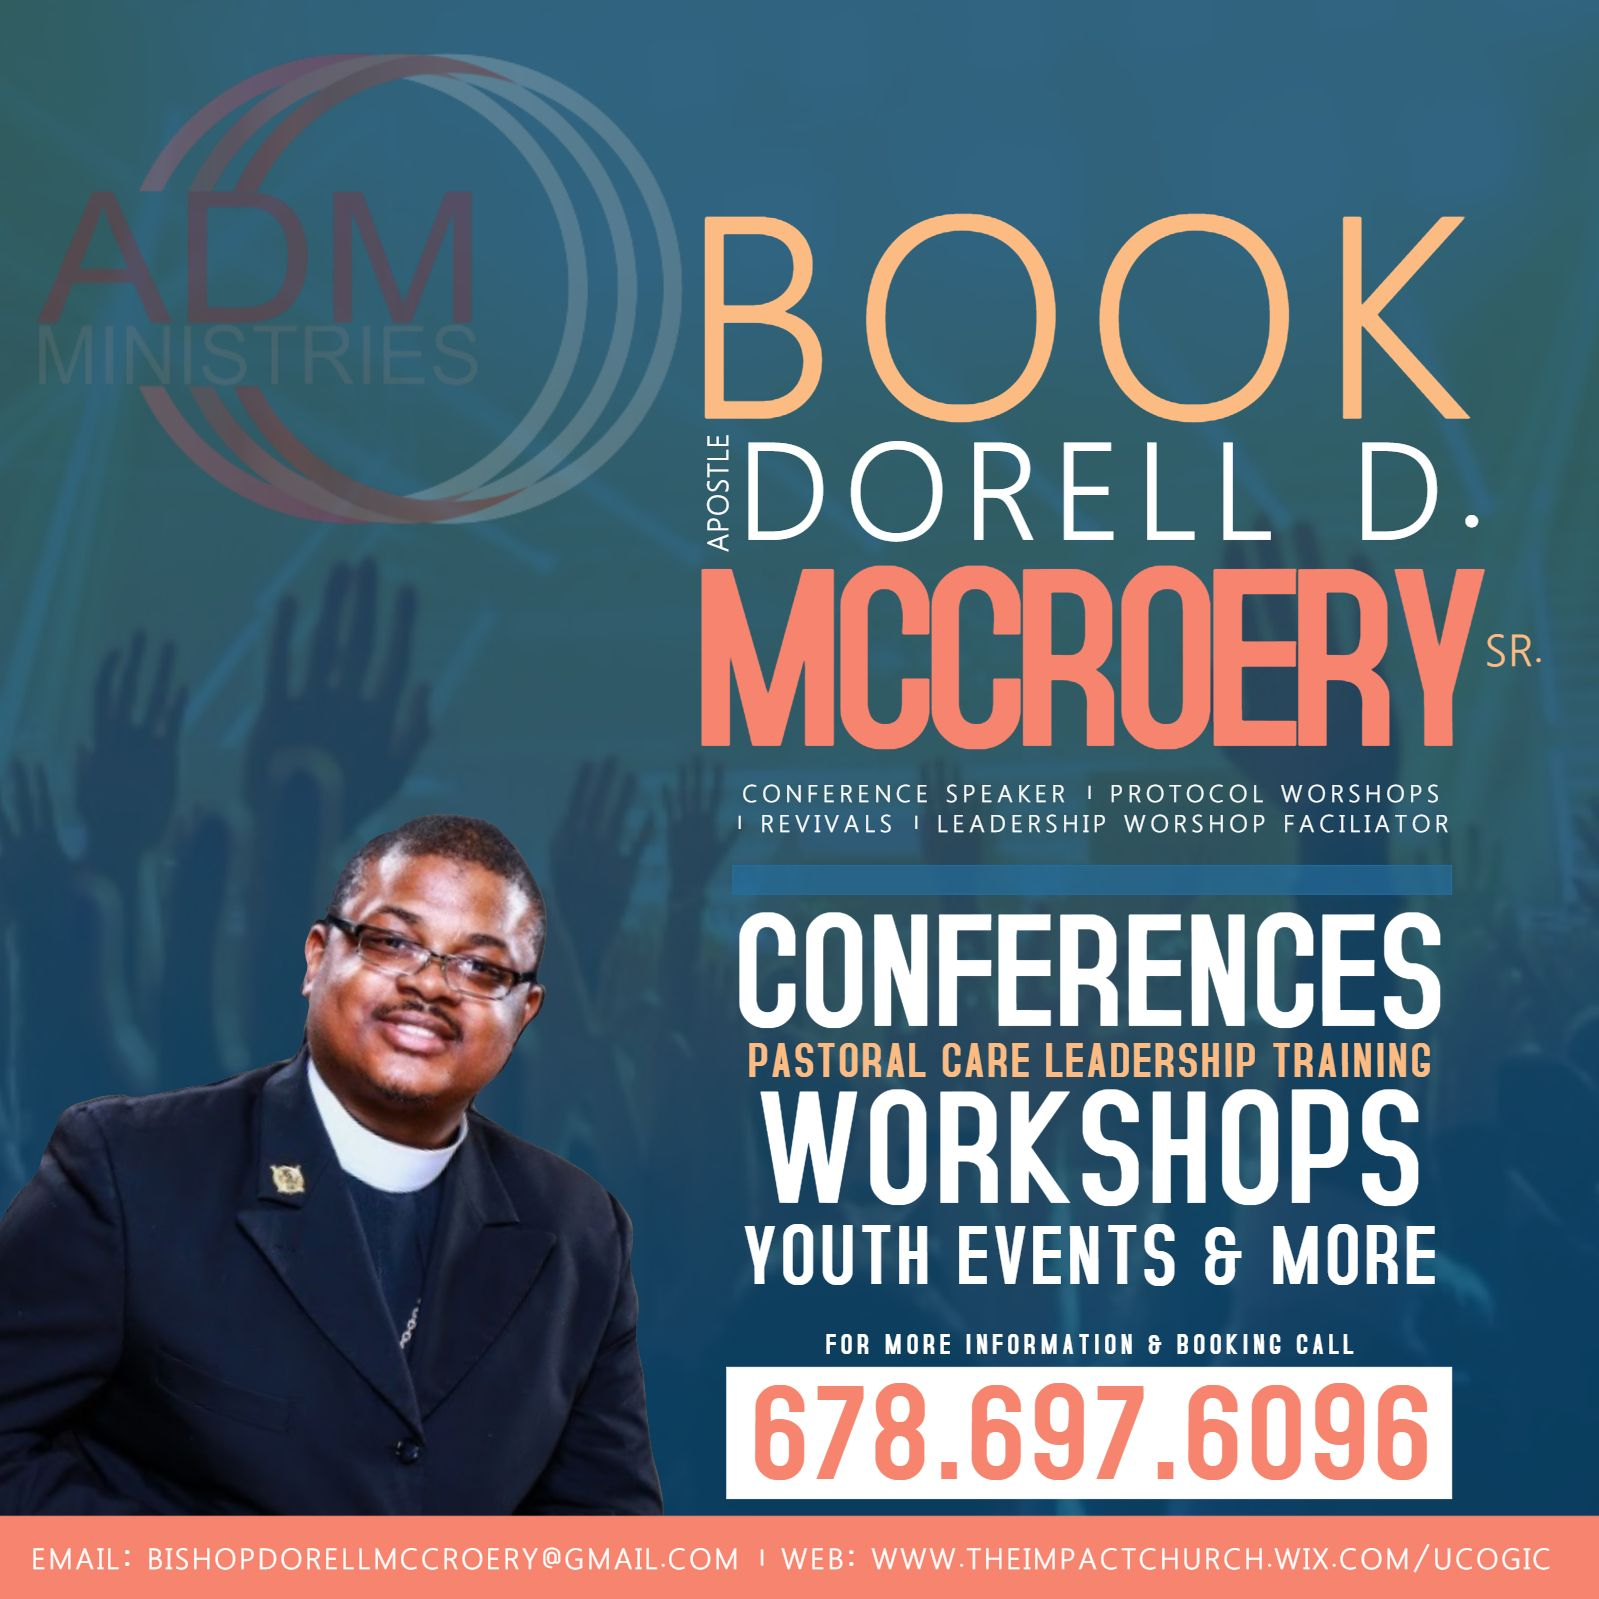 Church Workshop Conference Event Flyer Template  Church Event